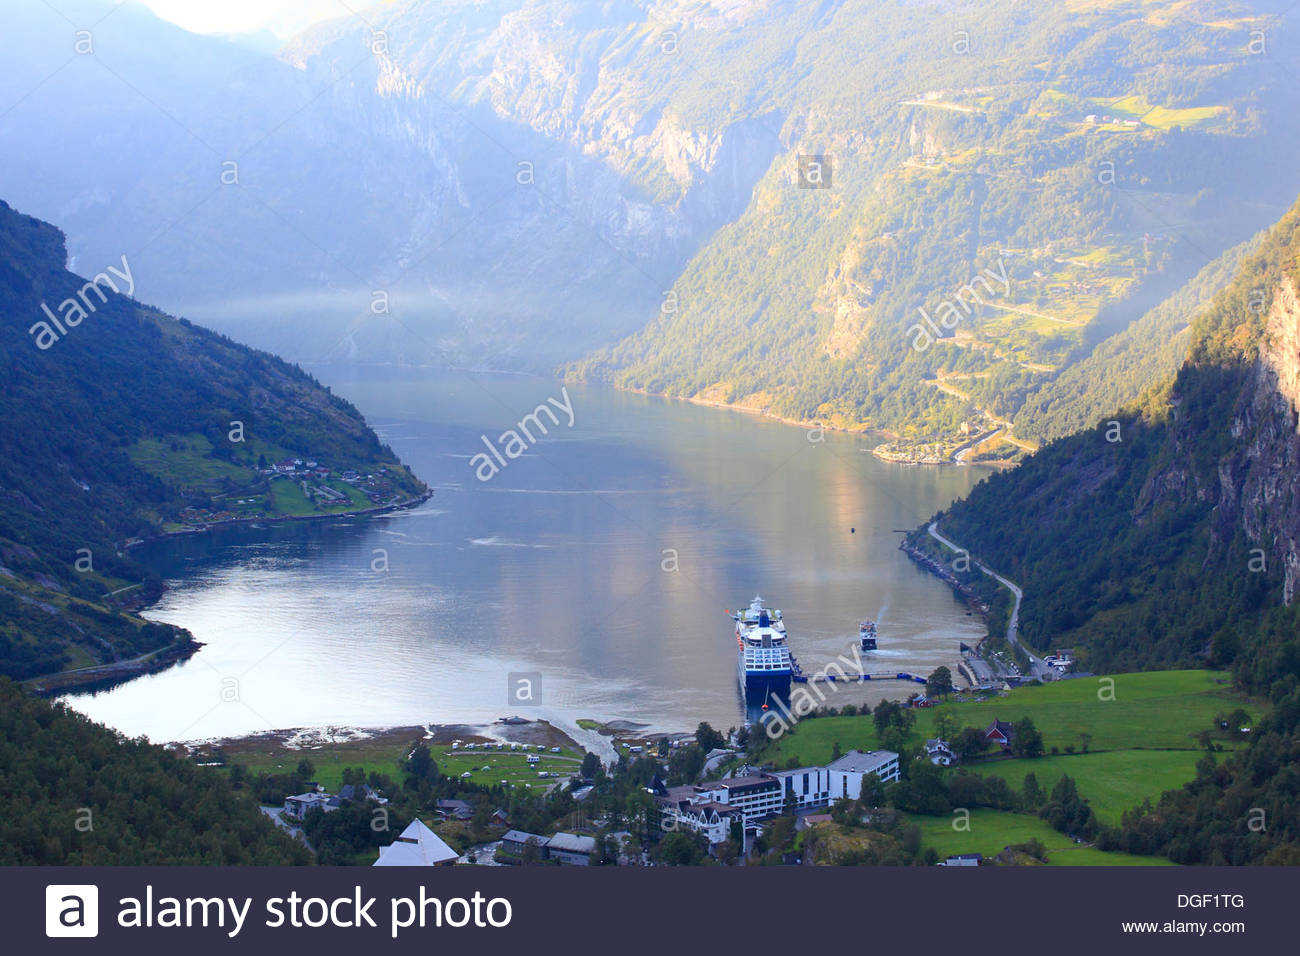 Geiranger is a small tourist village in Sunnmøre region of Møre og Romsdal county in the western part of Norway. - Stock Image